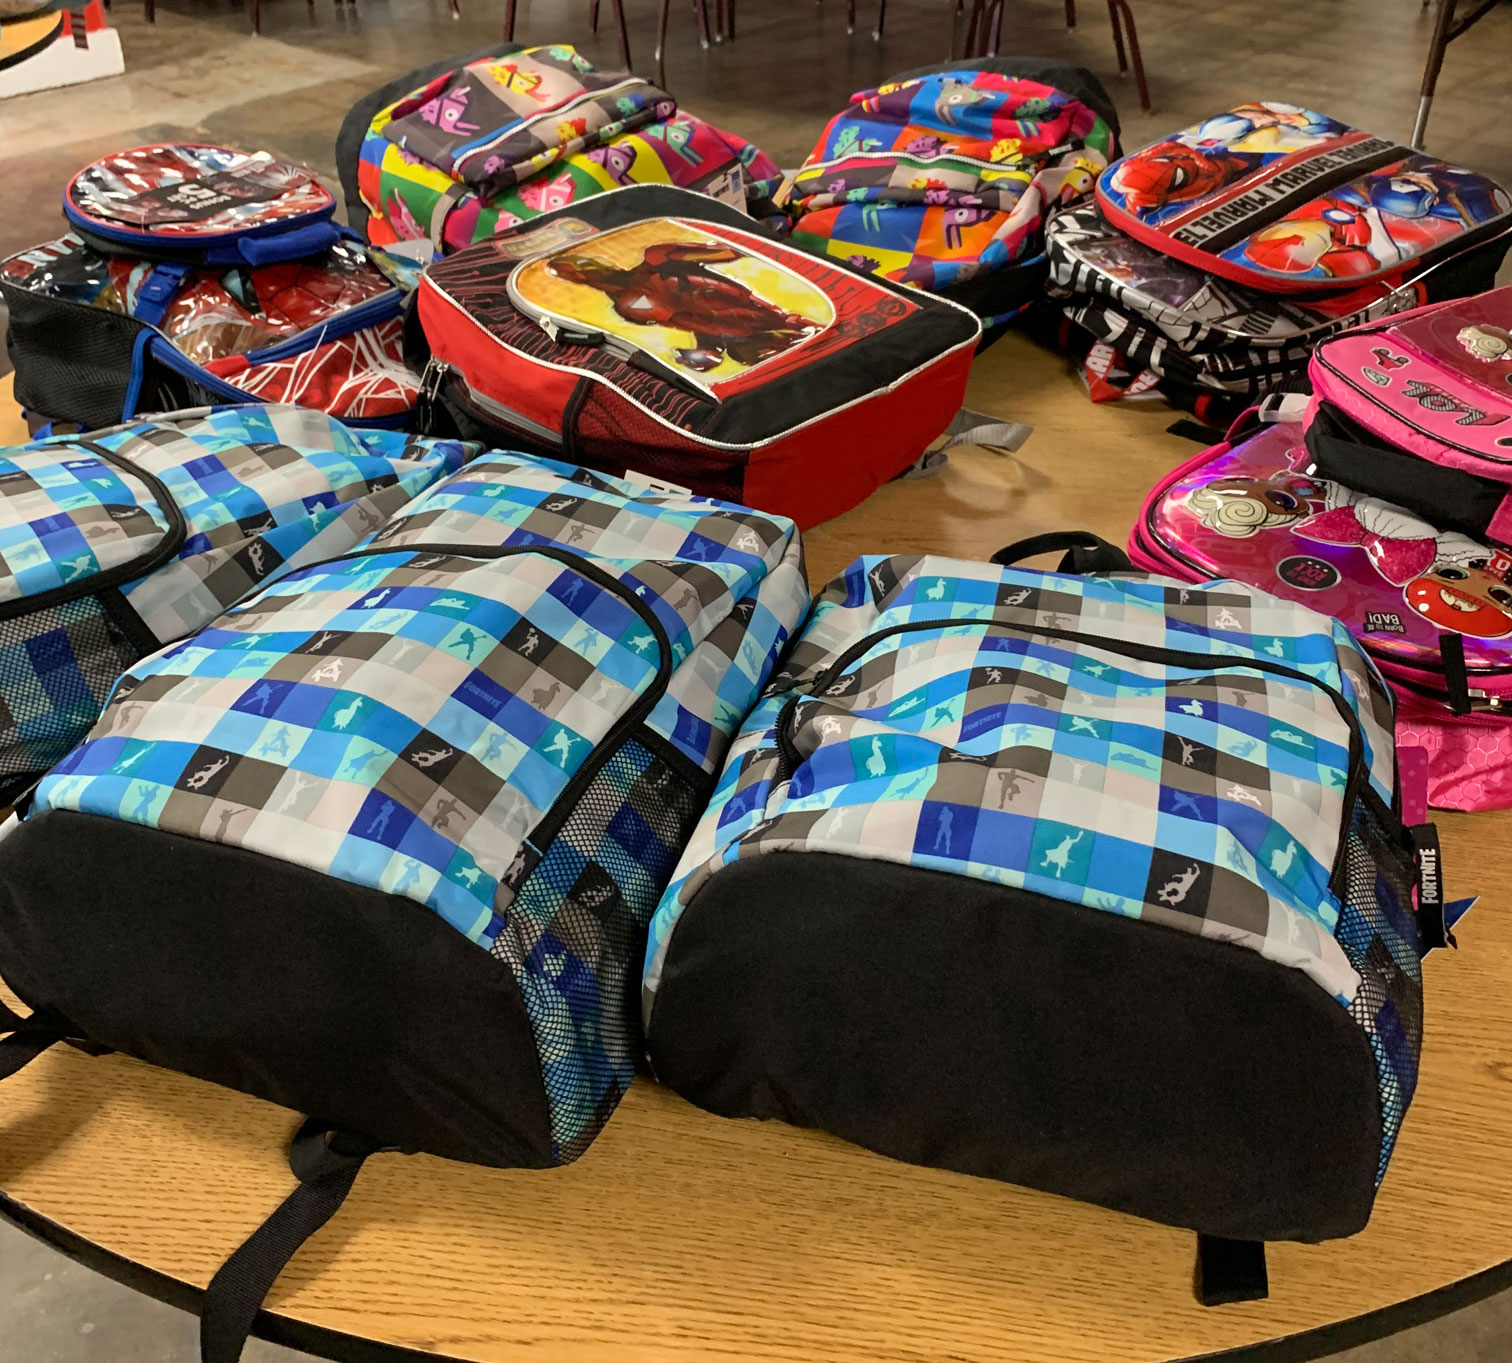 More backpacks on a table.